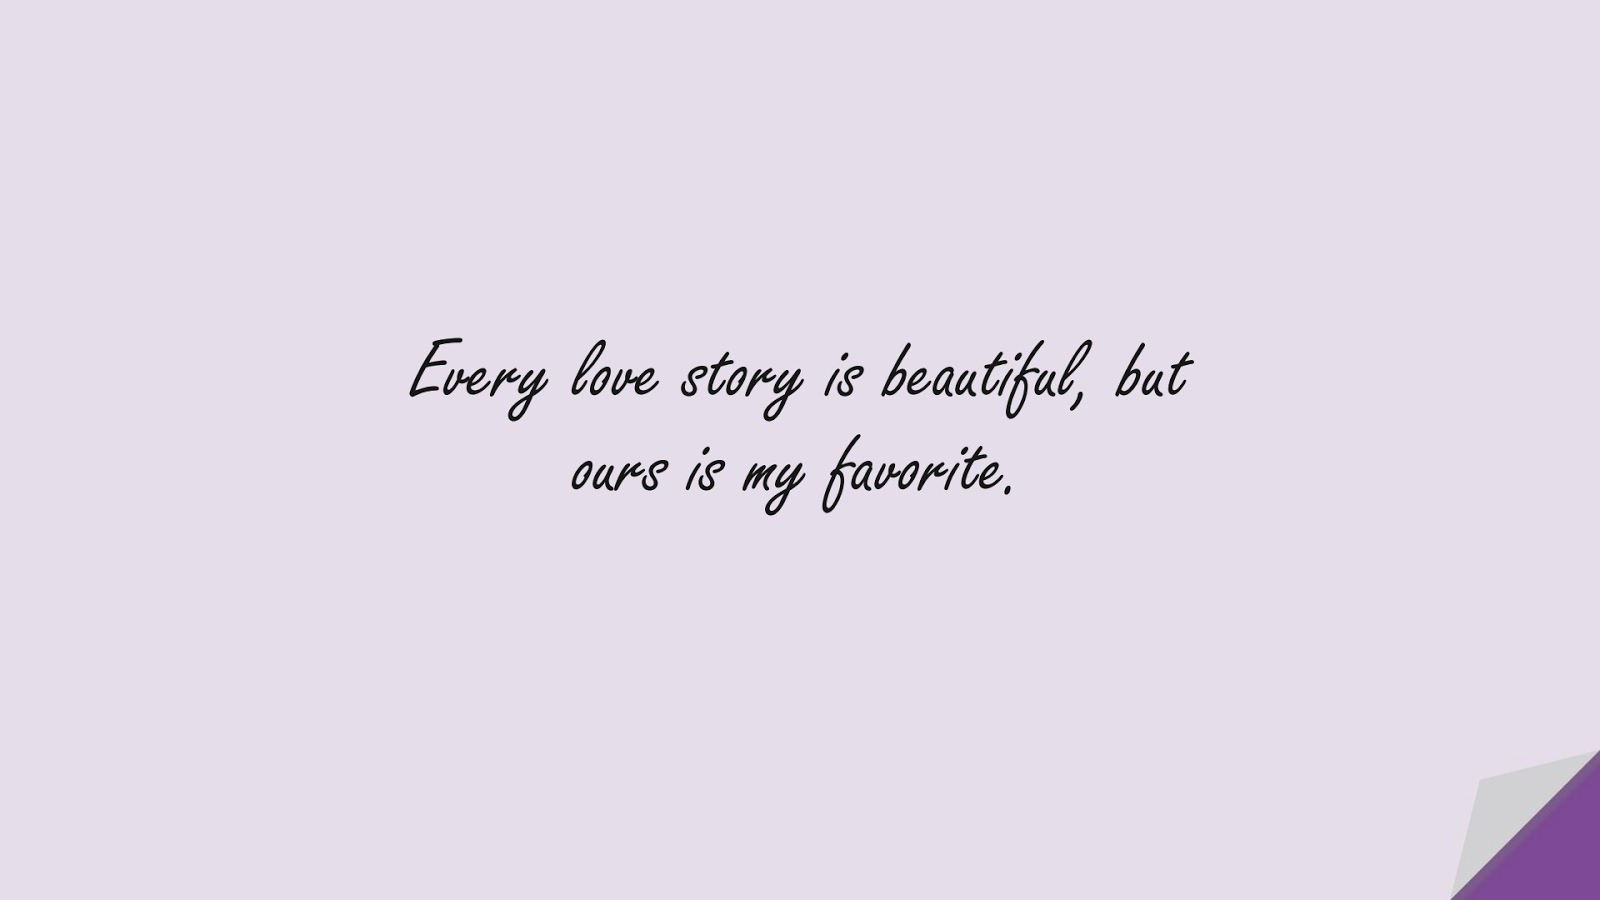 Every love story is beautiful, but ours is my favorite.FALSE